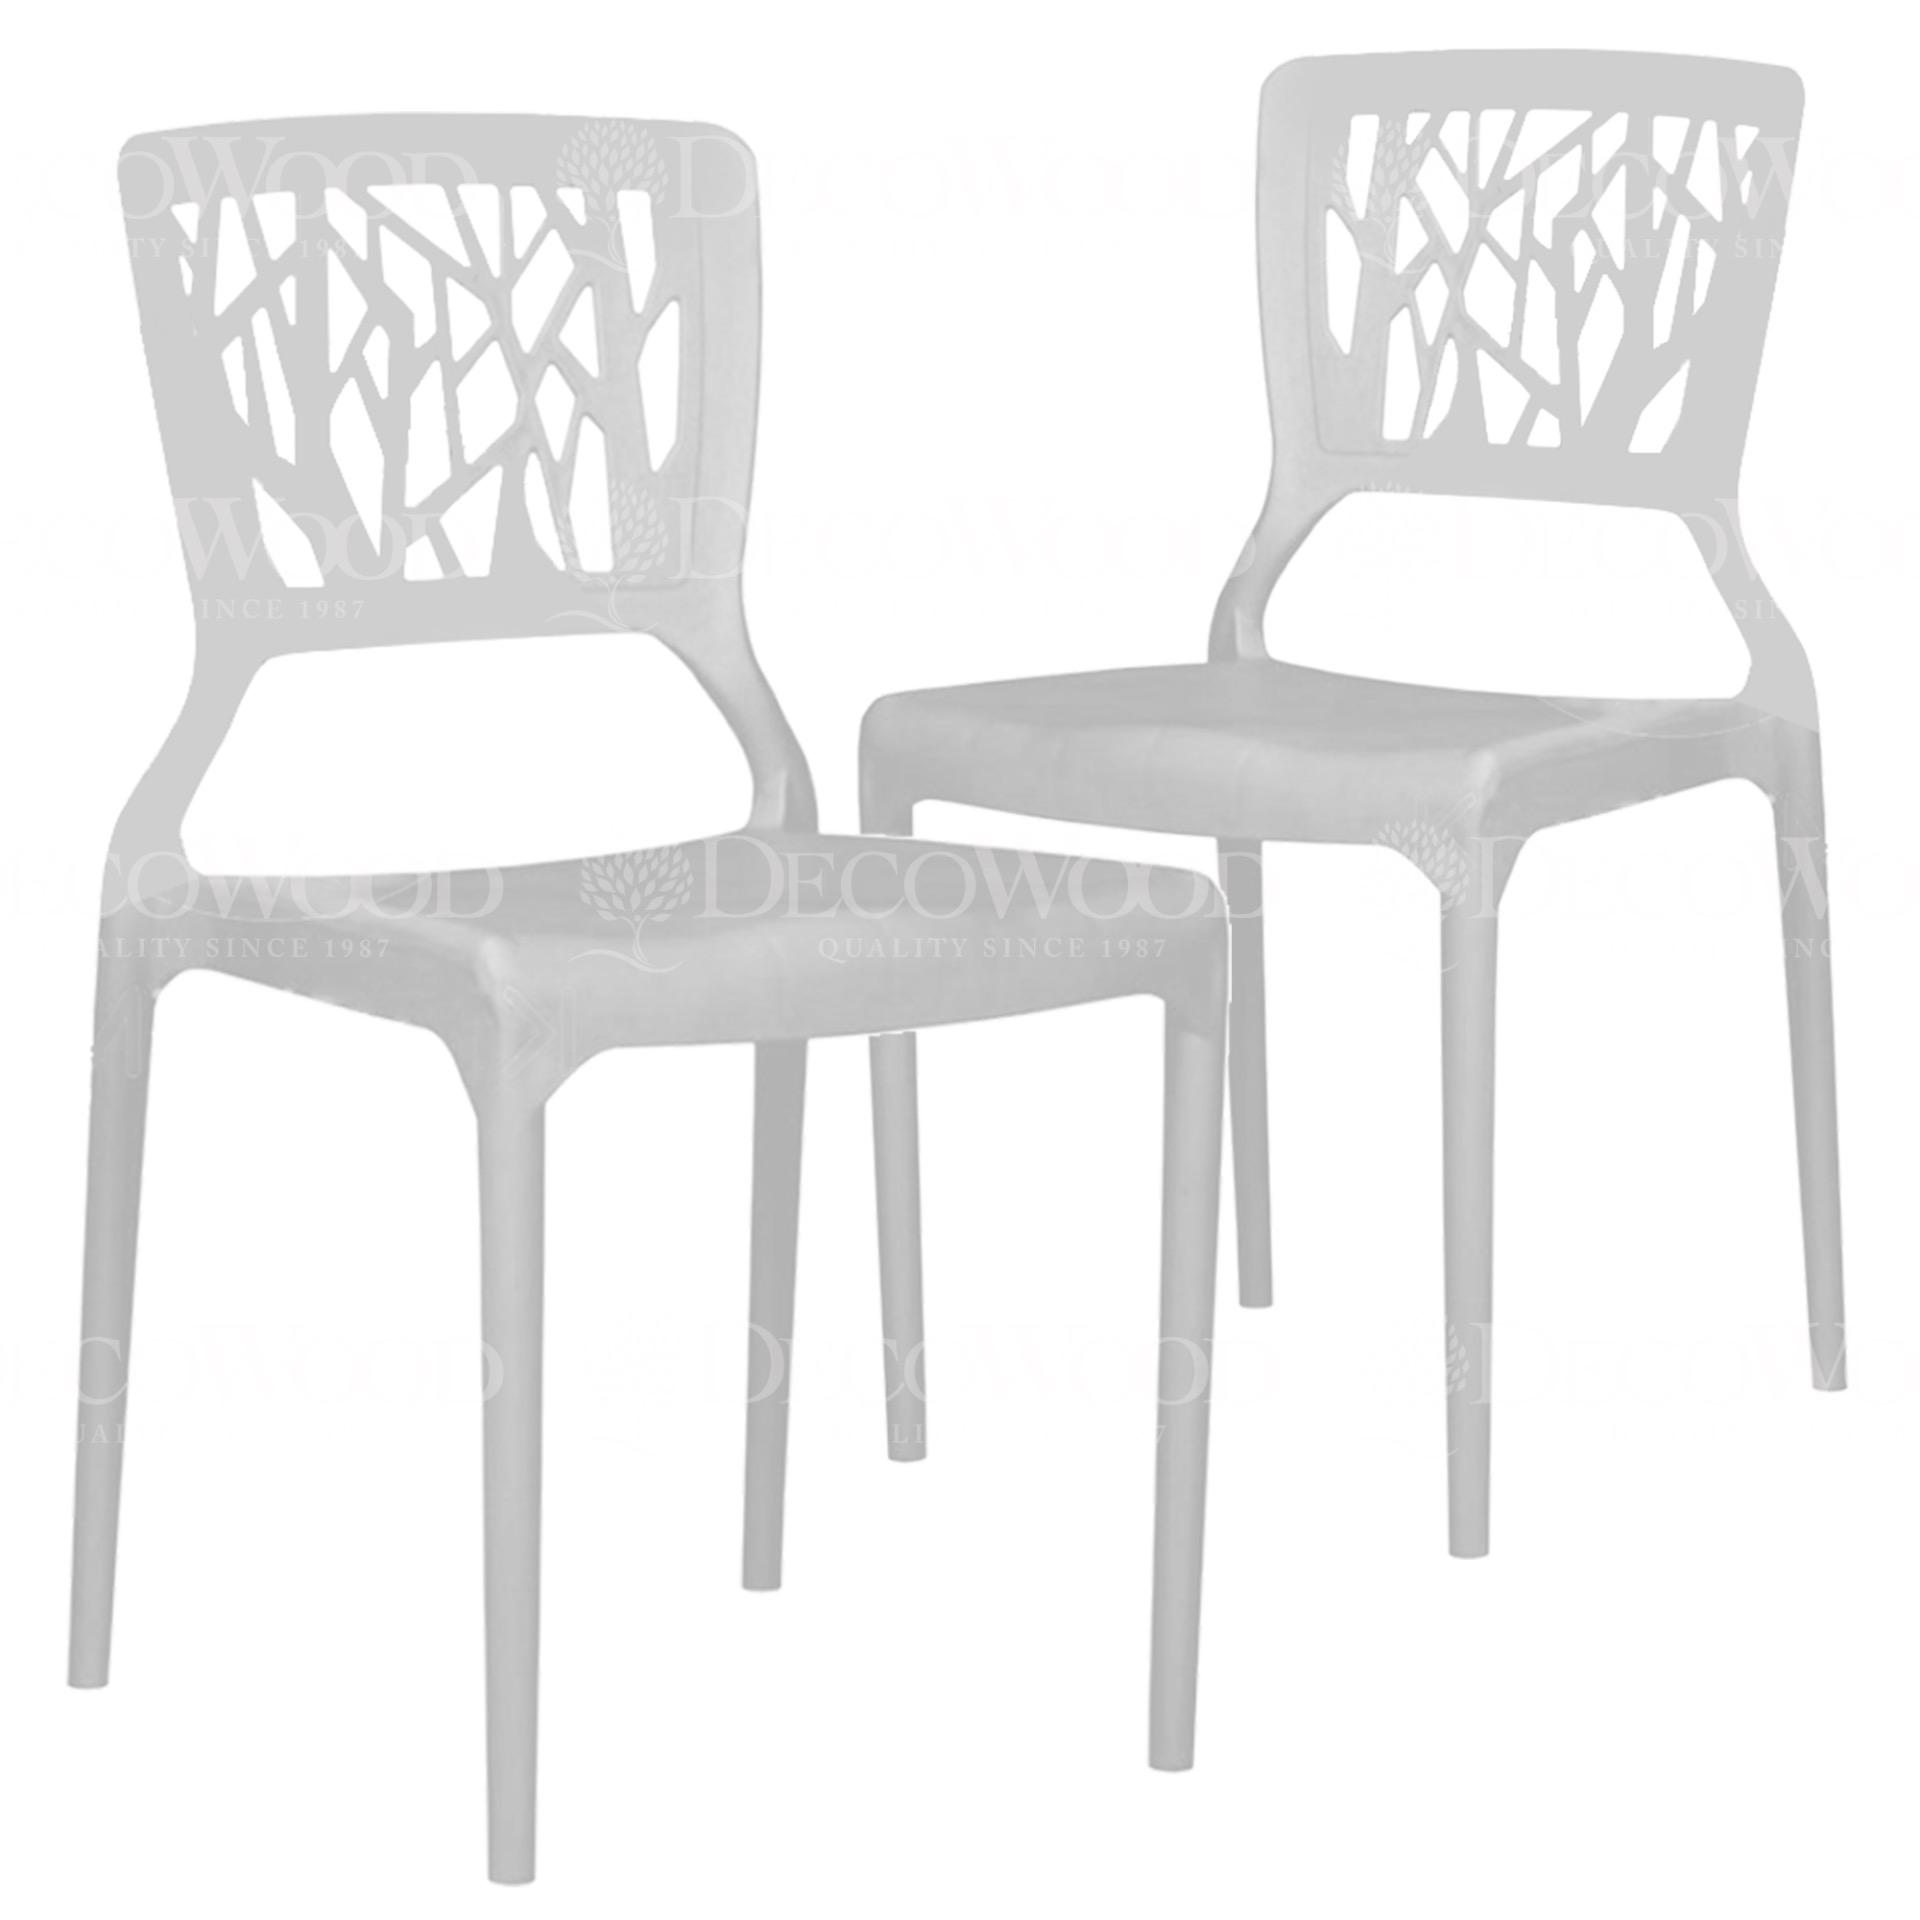 Set Of 2 High Quality Stackable Plastic Chair Dining Chair Outdoor